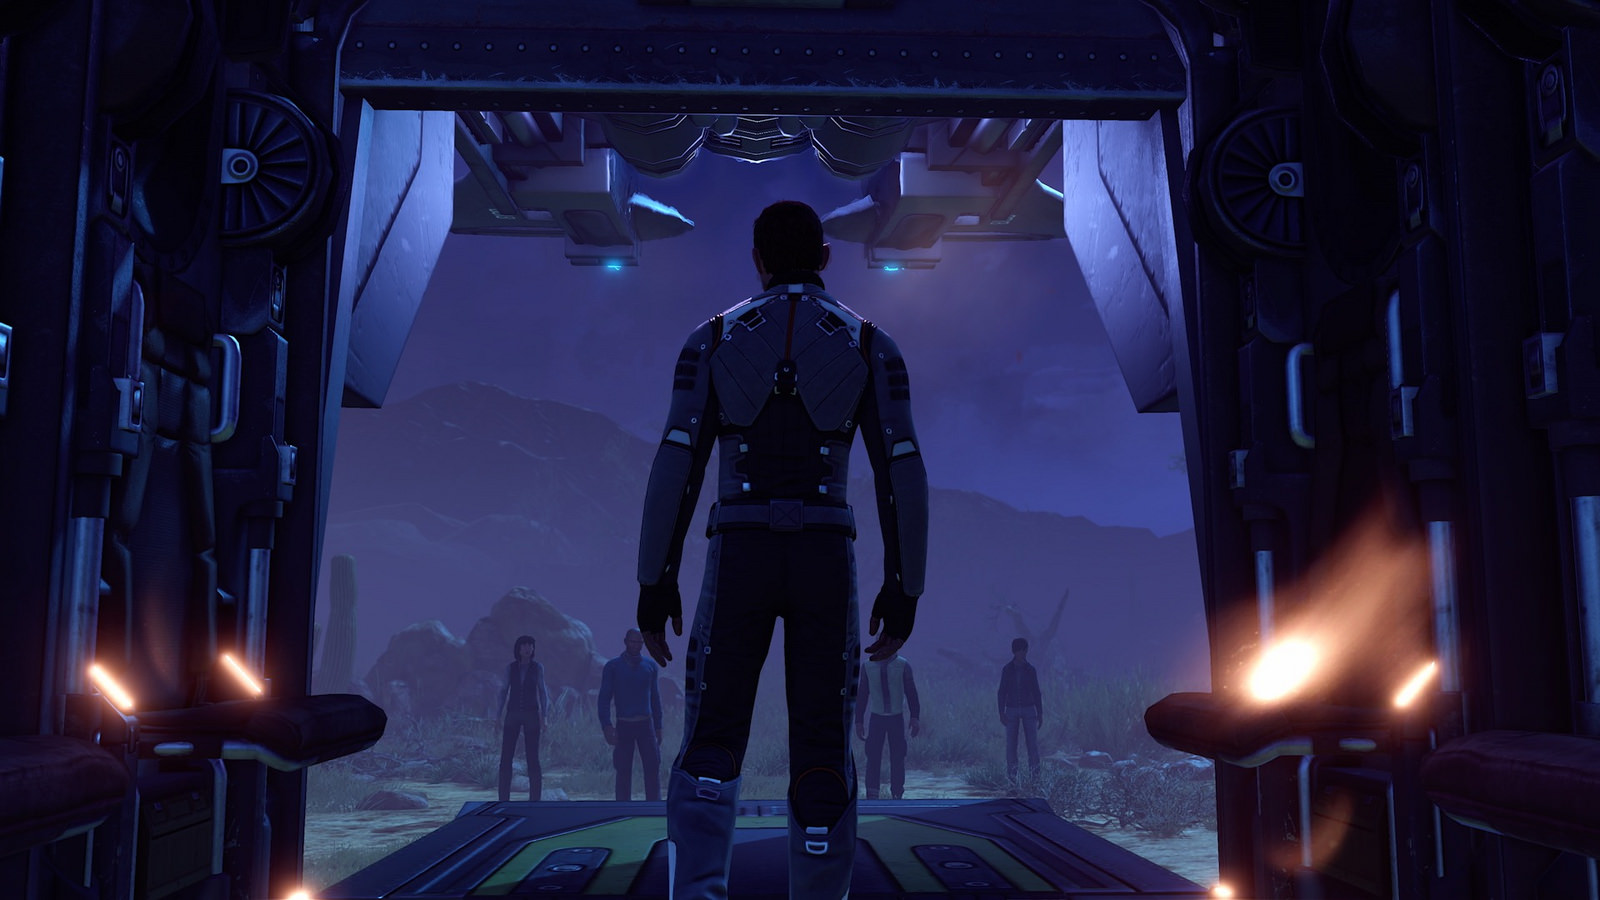 'XCOM 2' arrives on PlayStation 4 and Xbox One September 6th